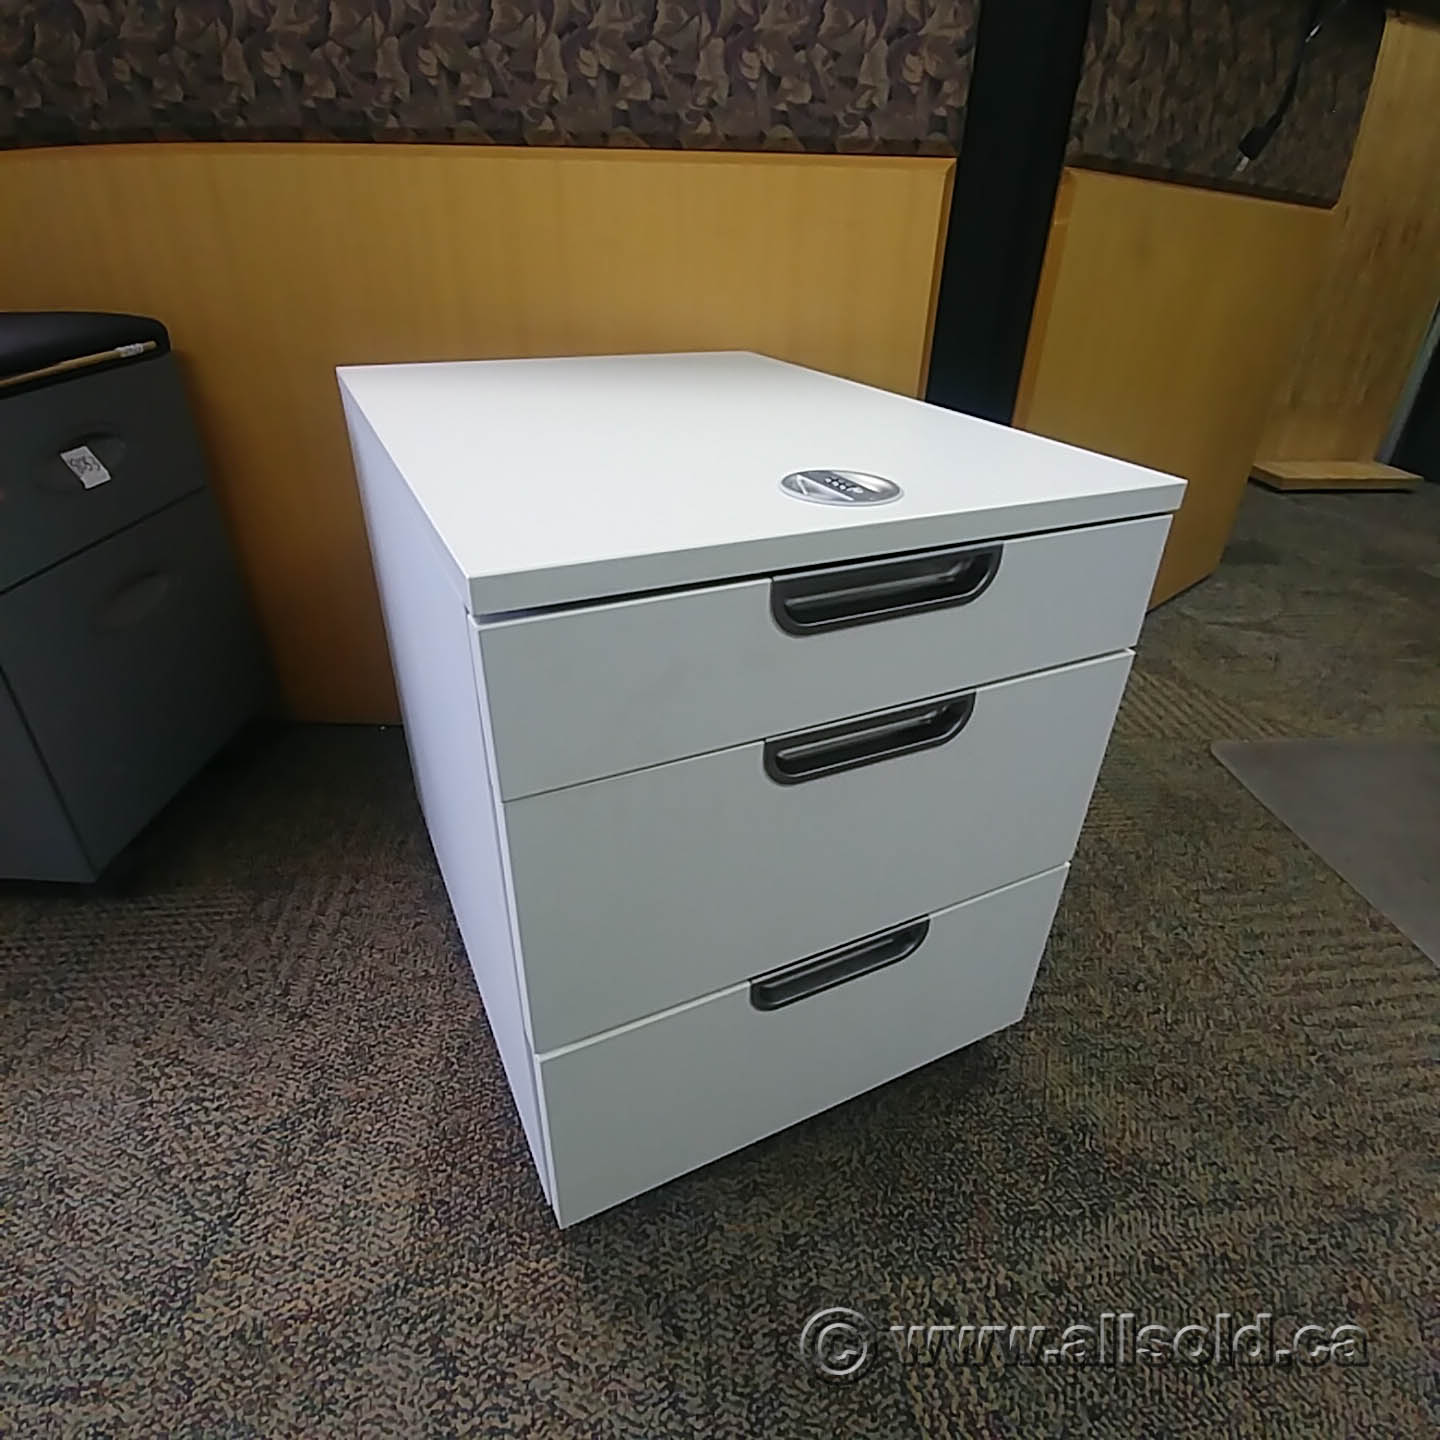 Ikea Galant White 3 Drawer Rolling Pedestal Allsold Ca Buy Sell Used Office Furniture Calgary